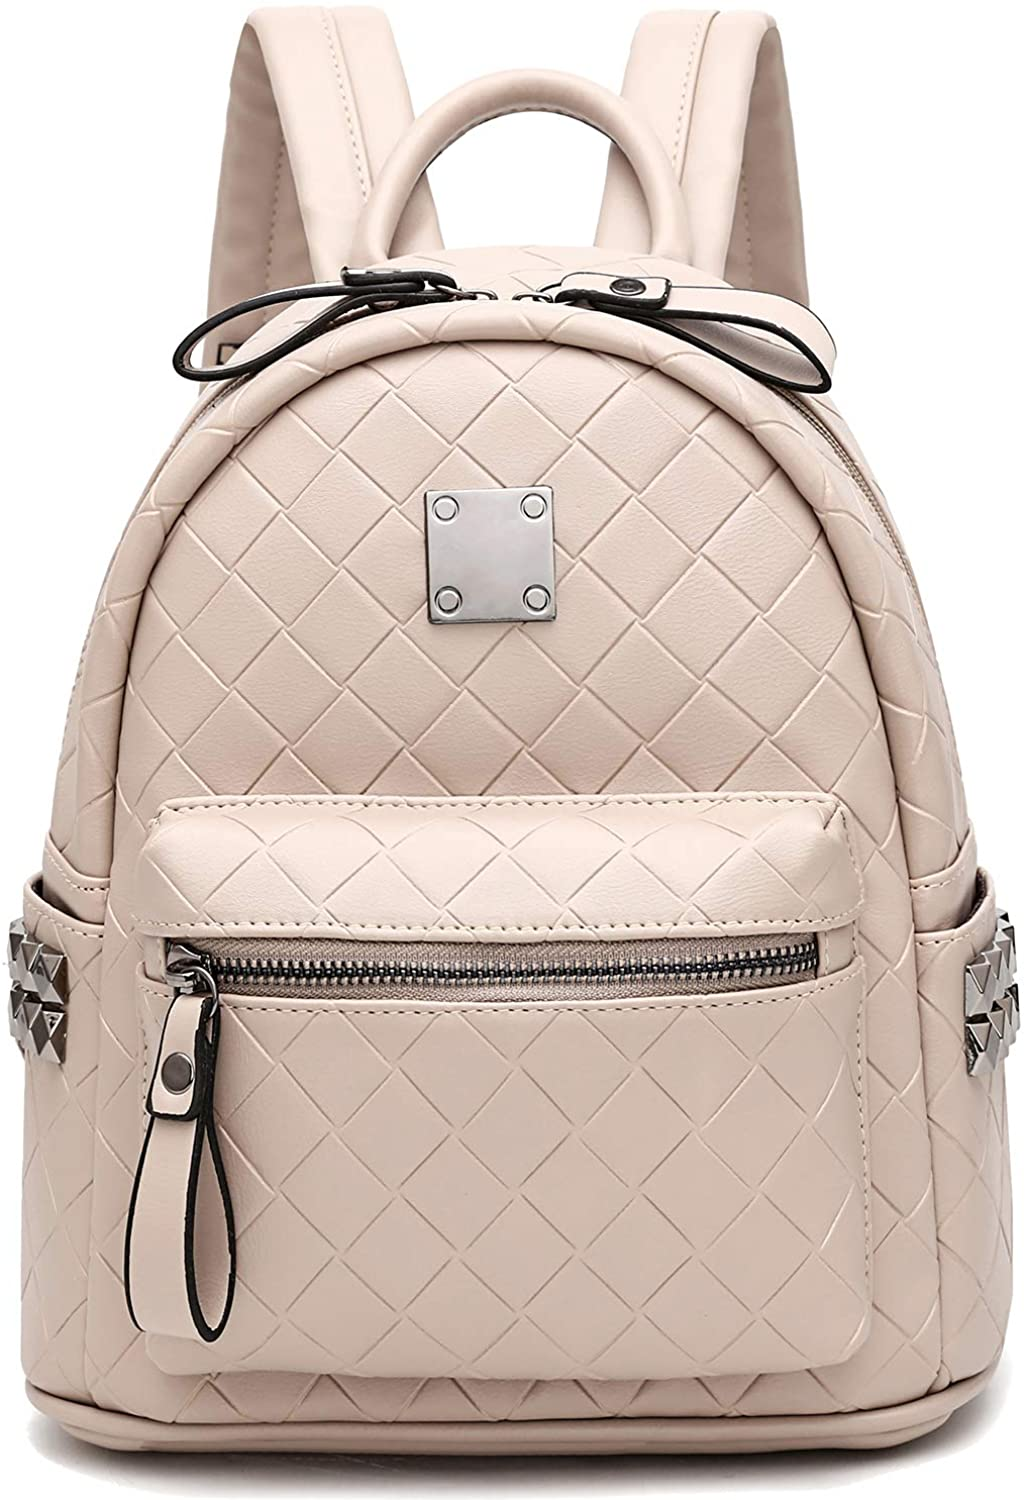 Girls Mini Backpack Leather Fashion Backpack Purse for Women Lingge Embossed Casual Travel Daypacks Satchel School Bags